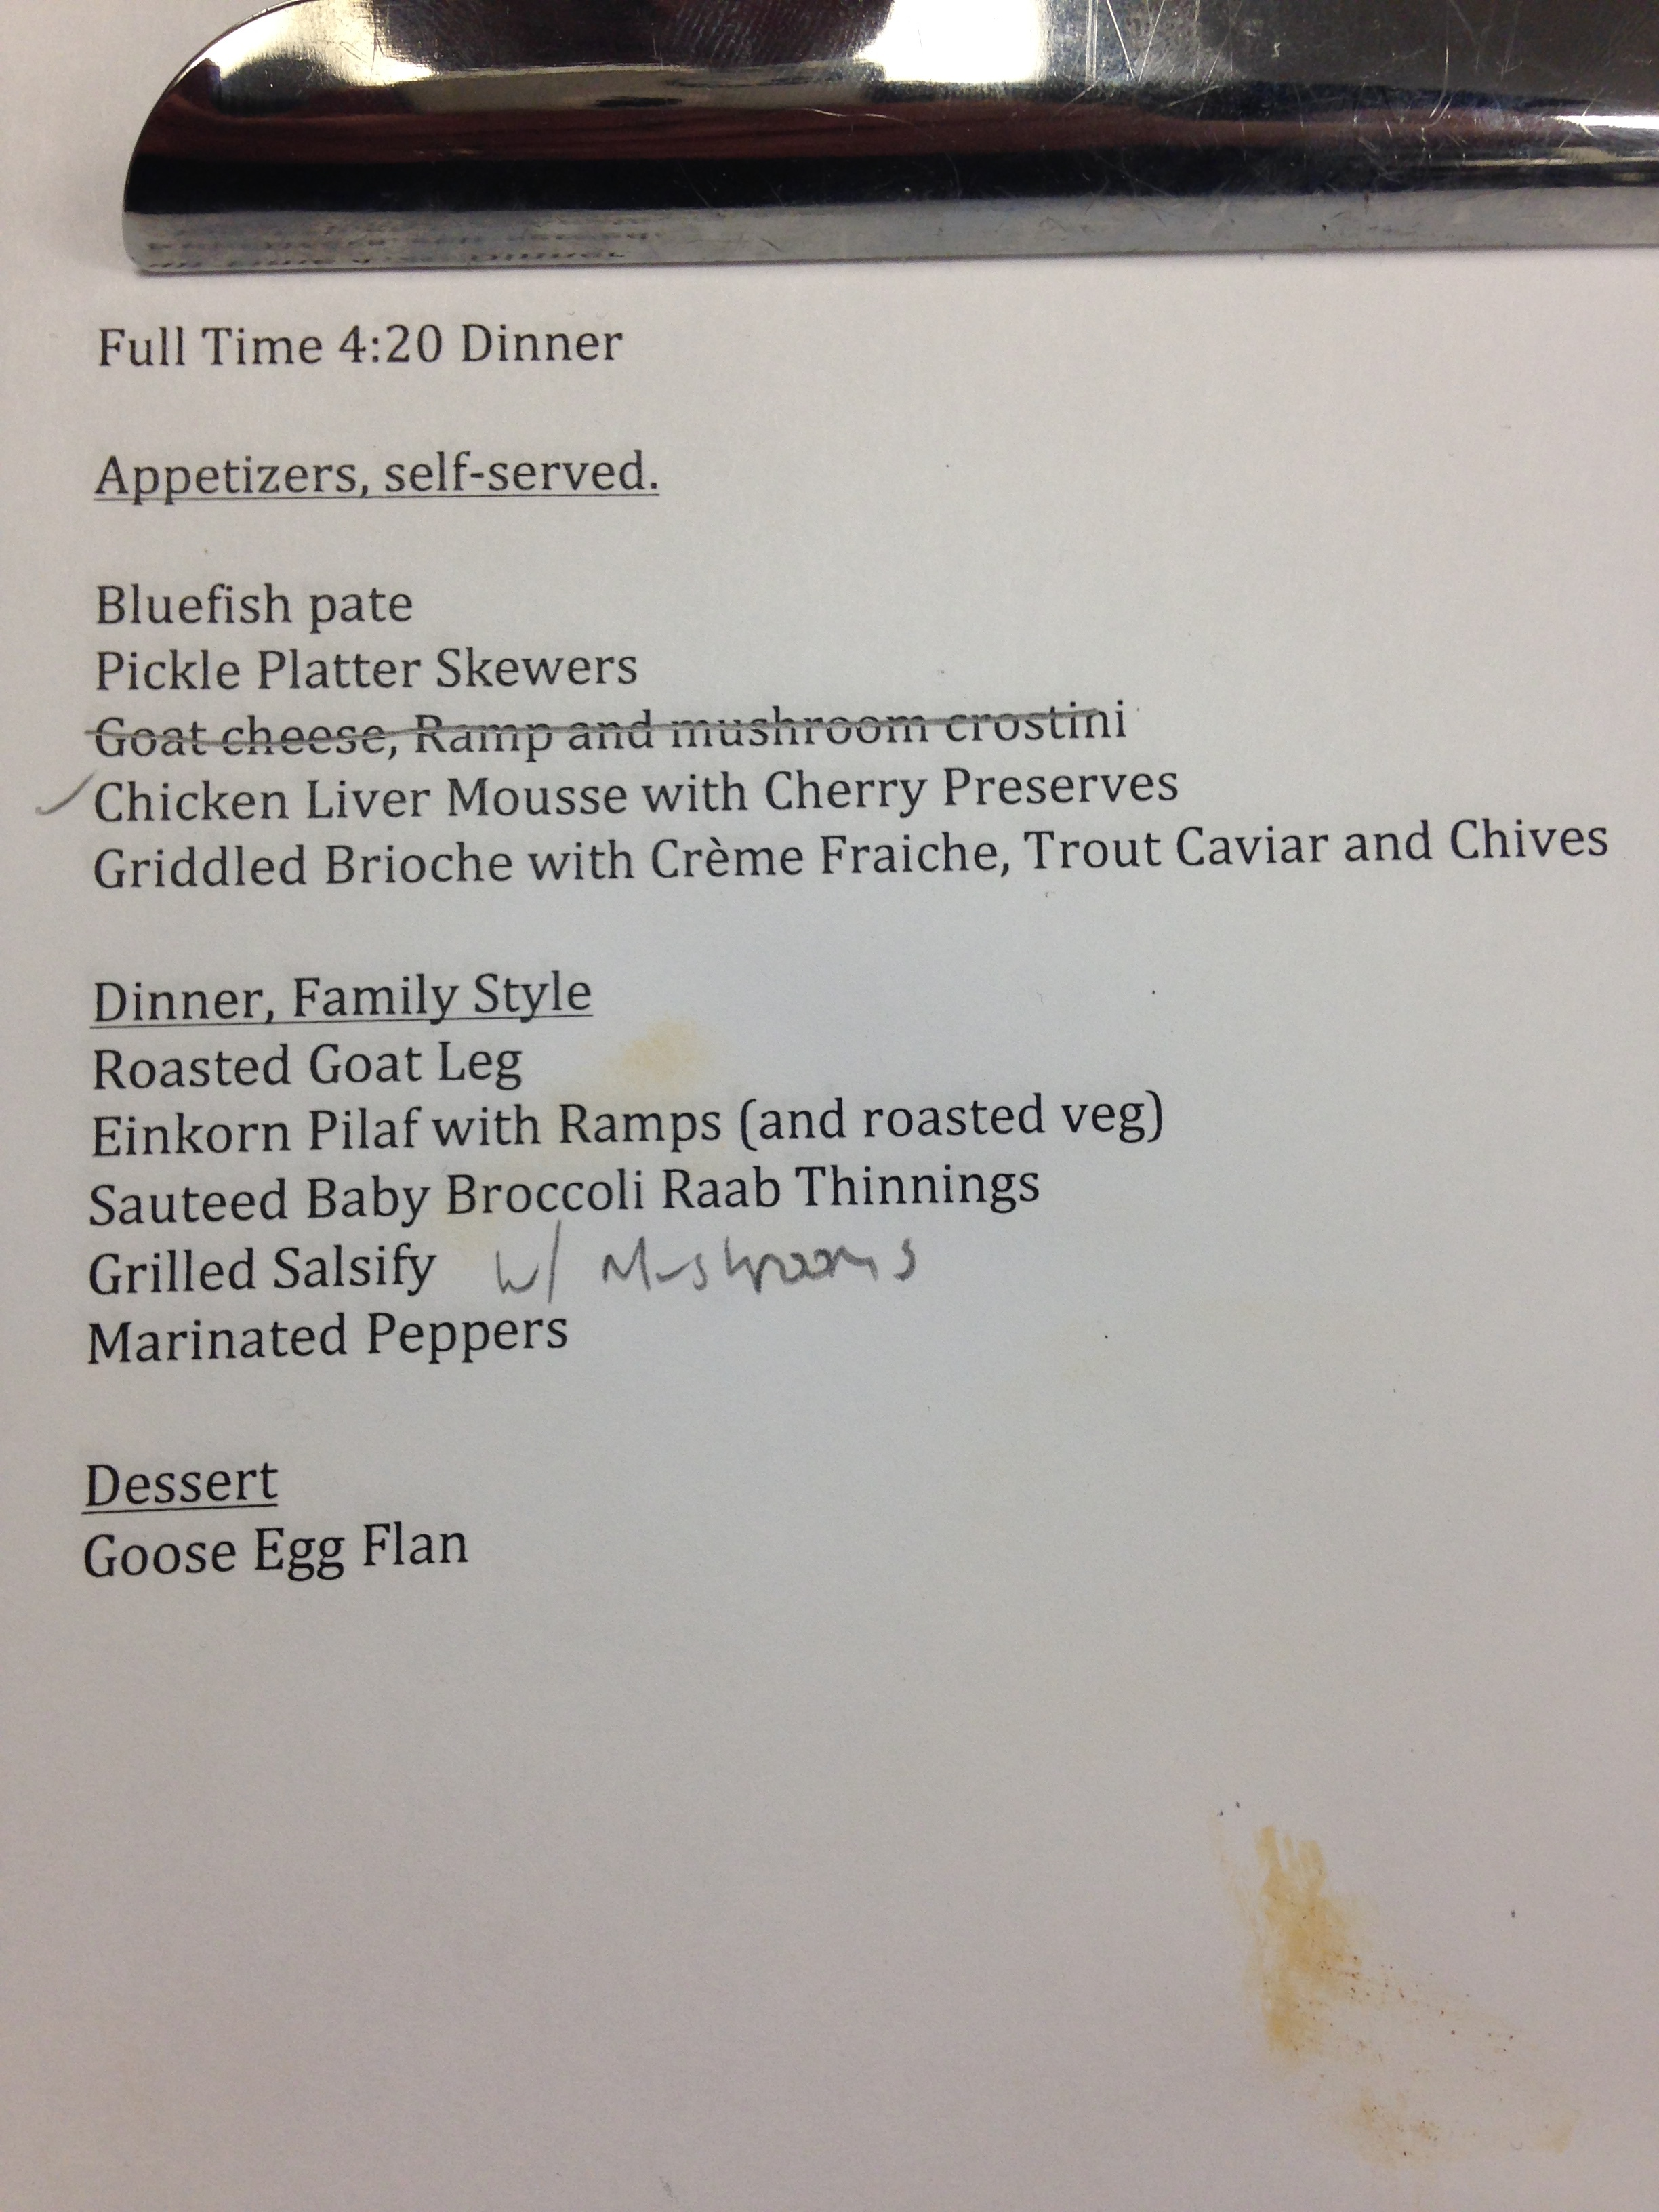 Trevett's menu. I had no idea I love einkorn so much.